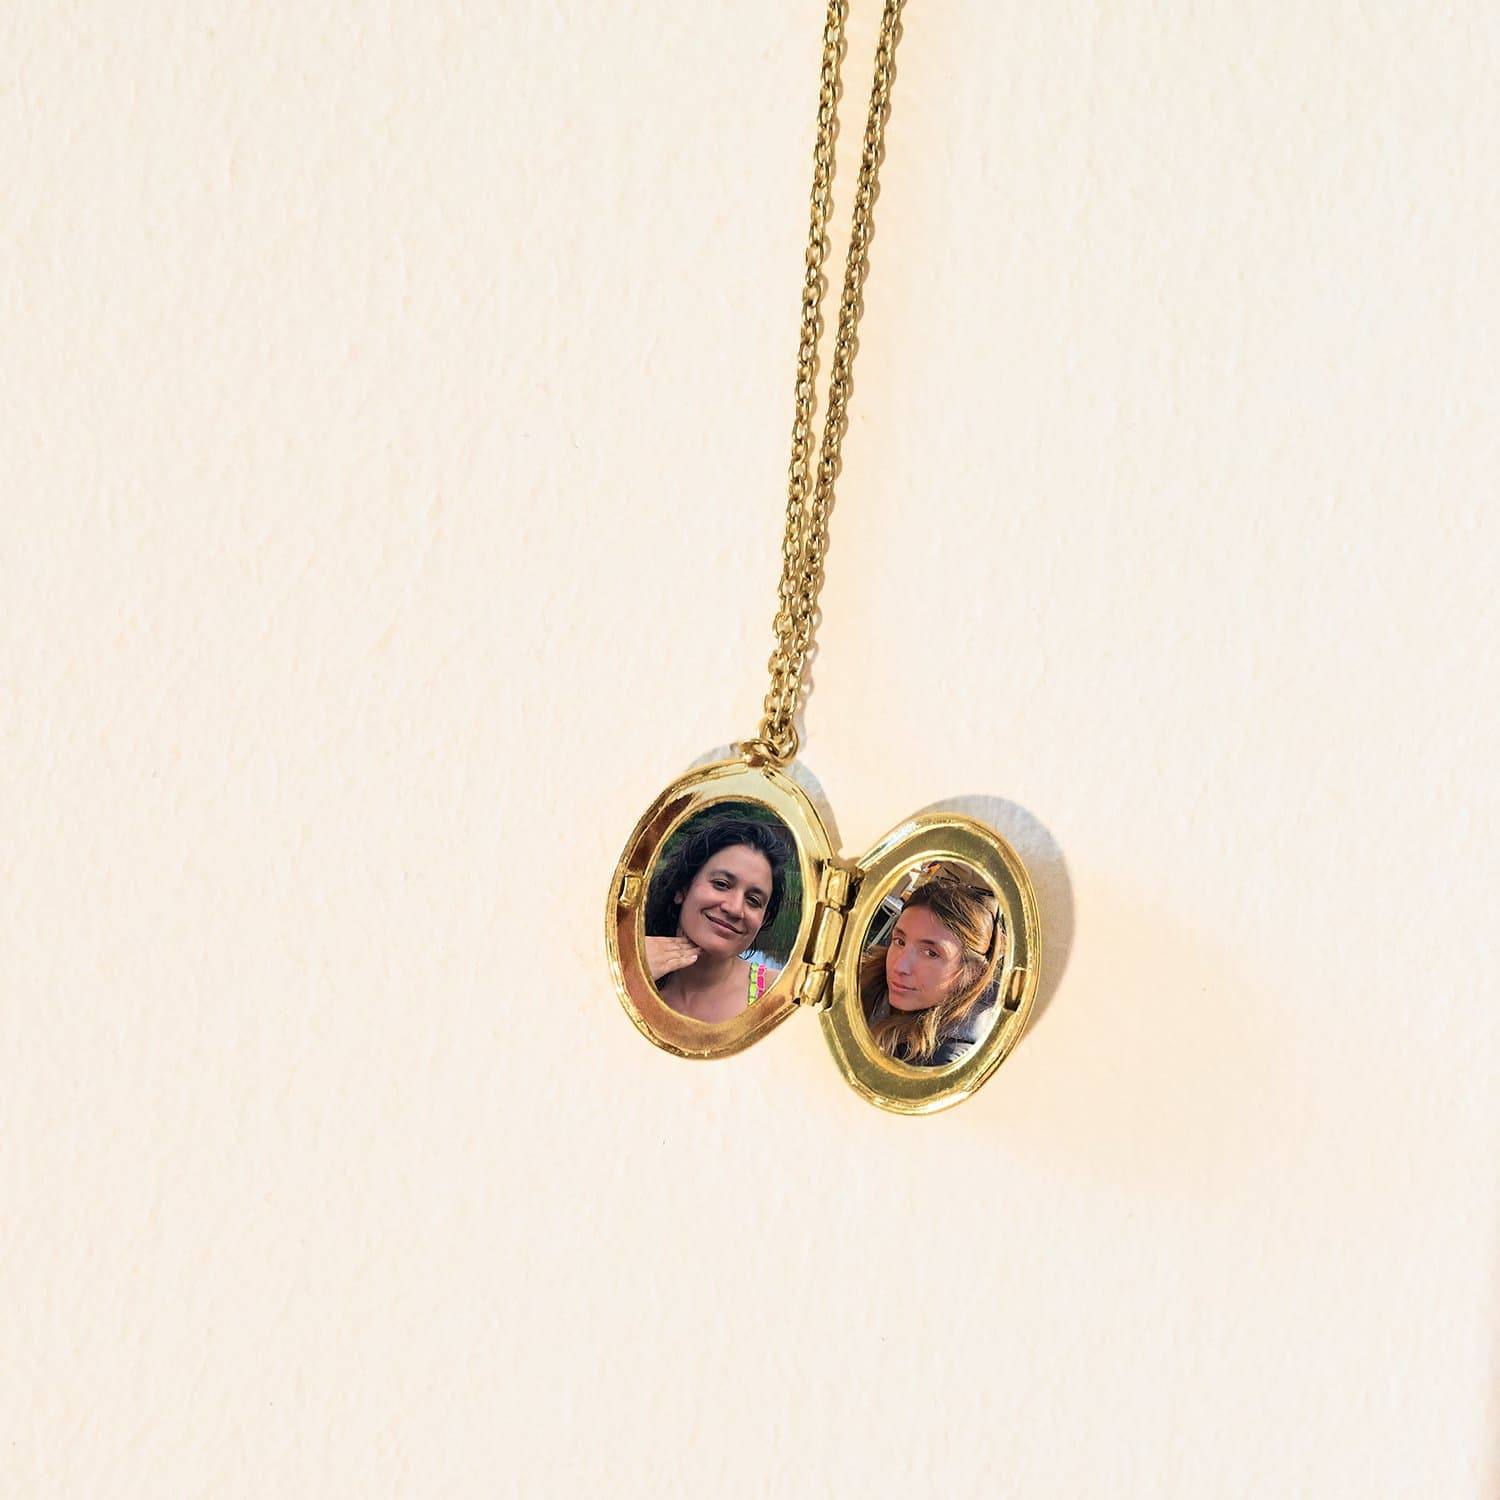 Oval Locket Necklace $20 or Less, Gift, Gold, Jewelry,